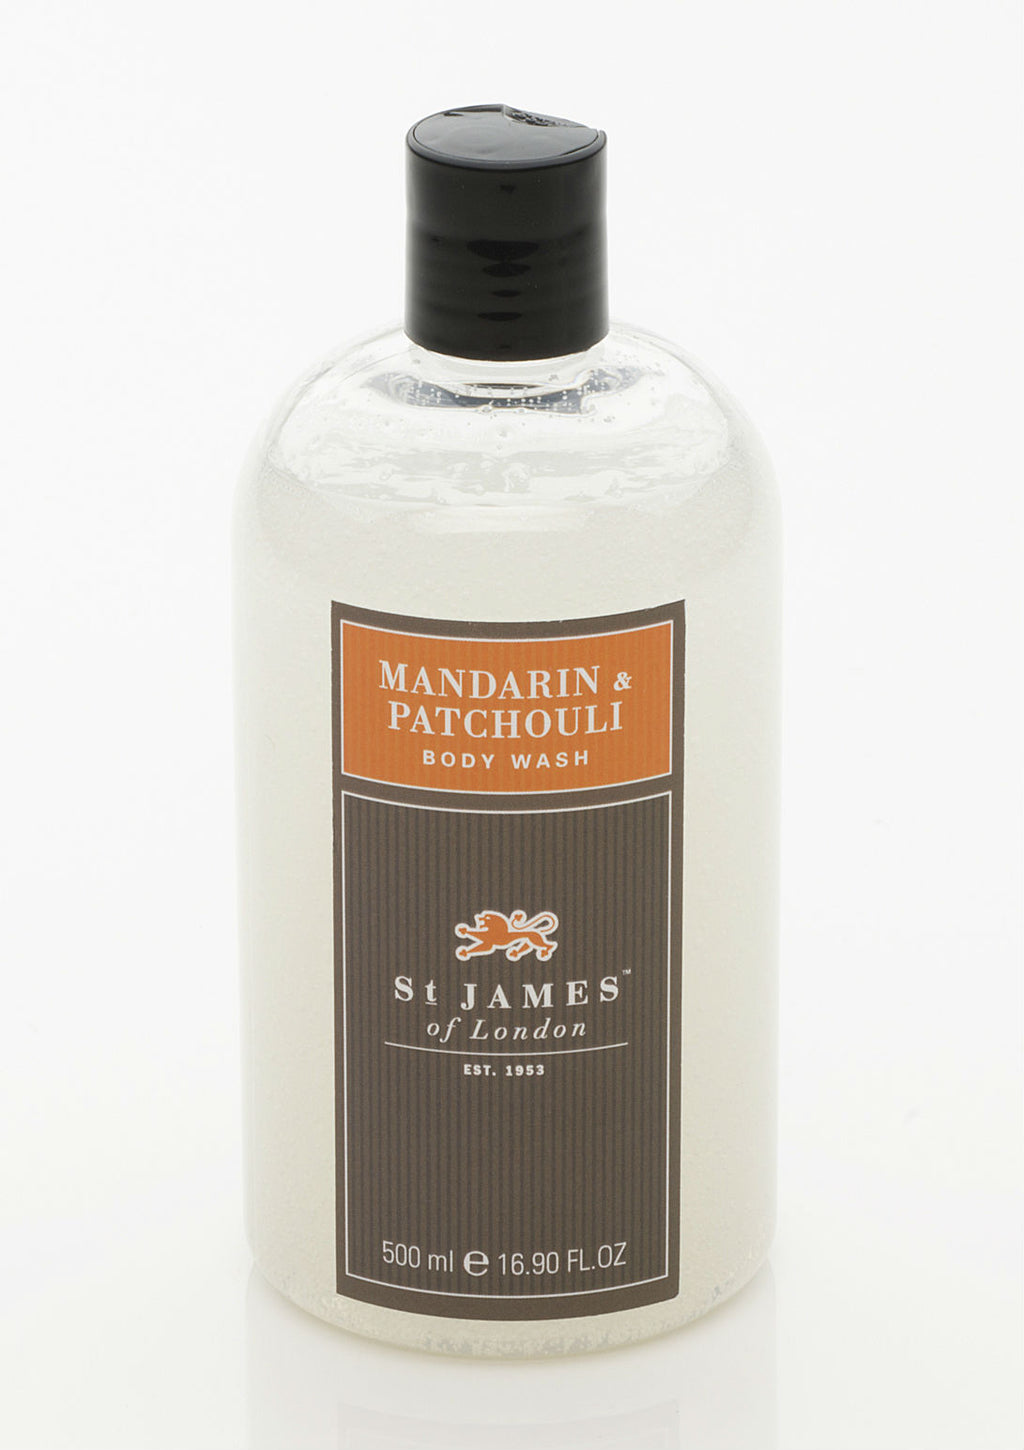 Mandarin & Patchouli Body Wash 0.5L